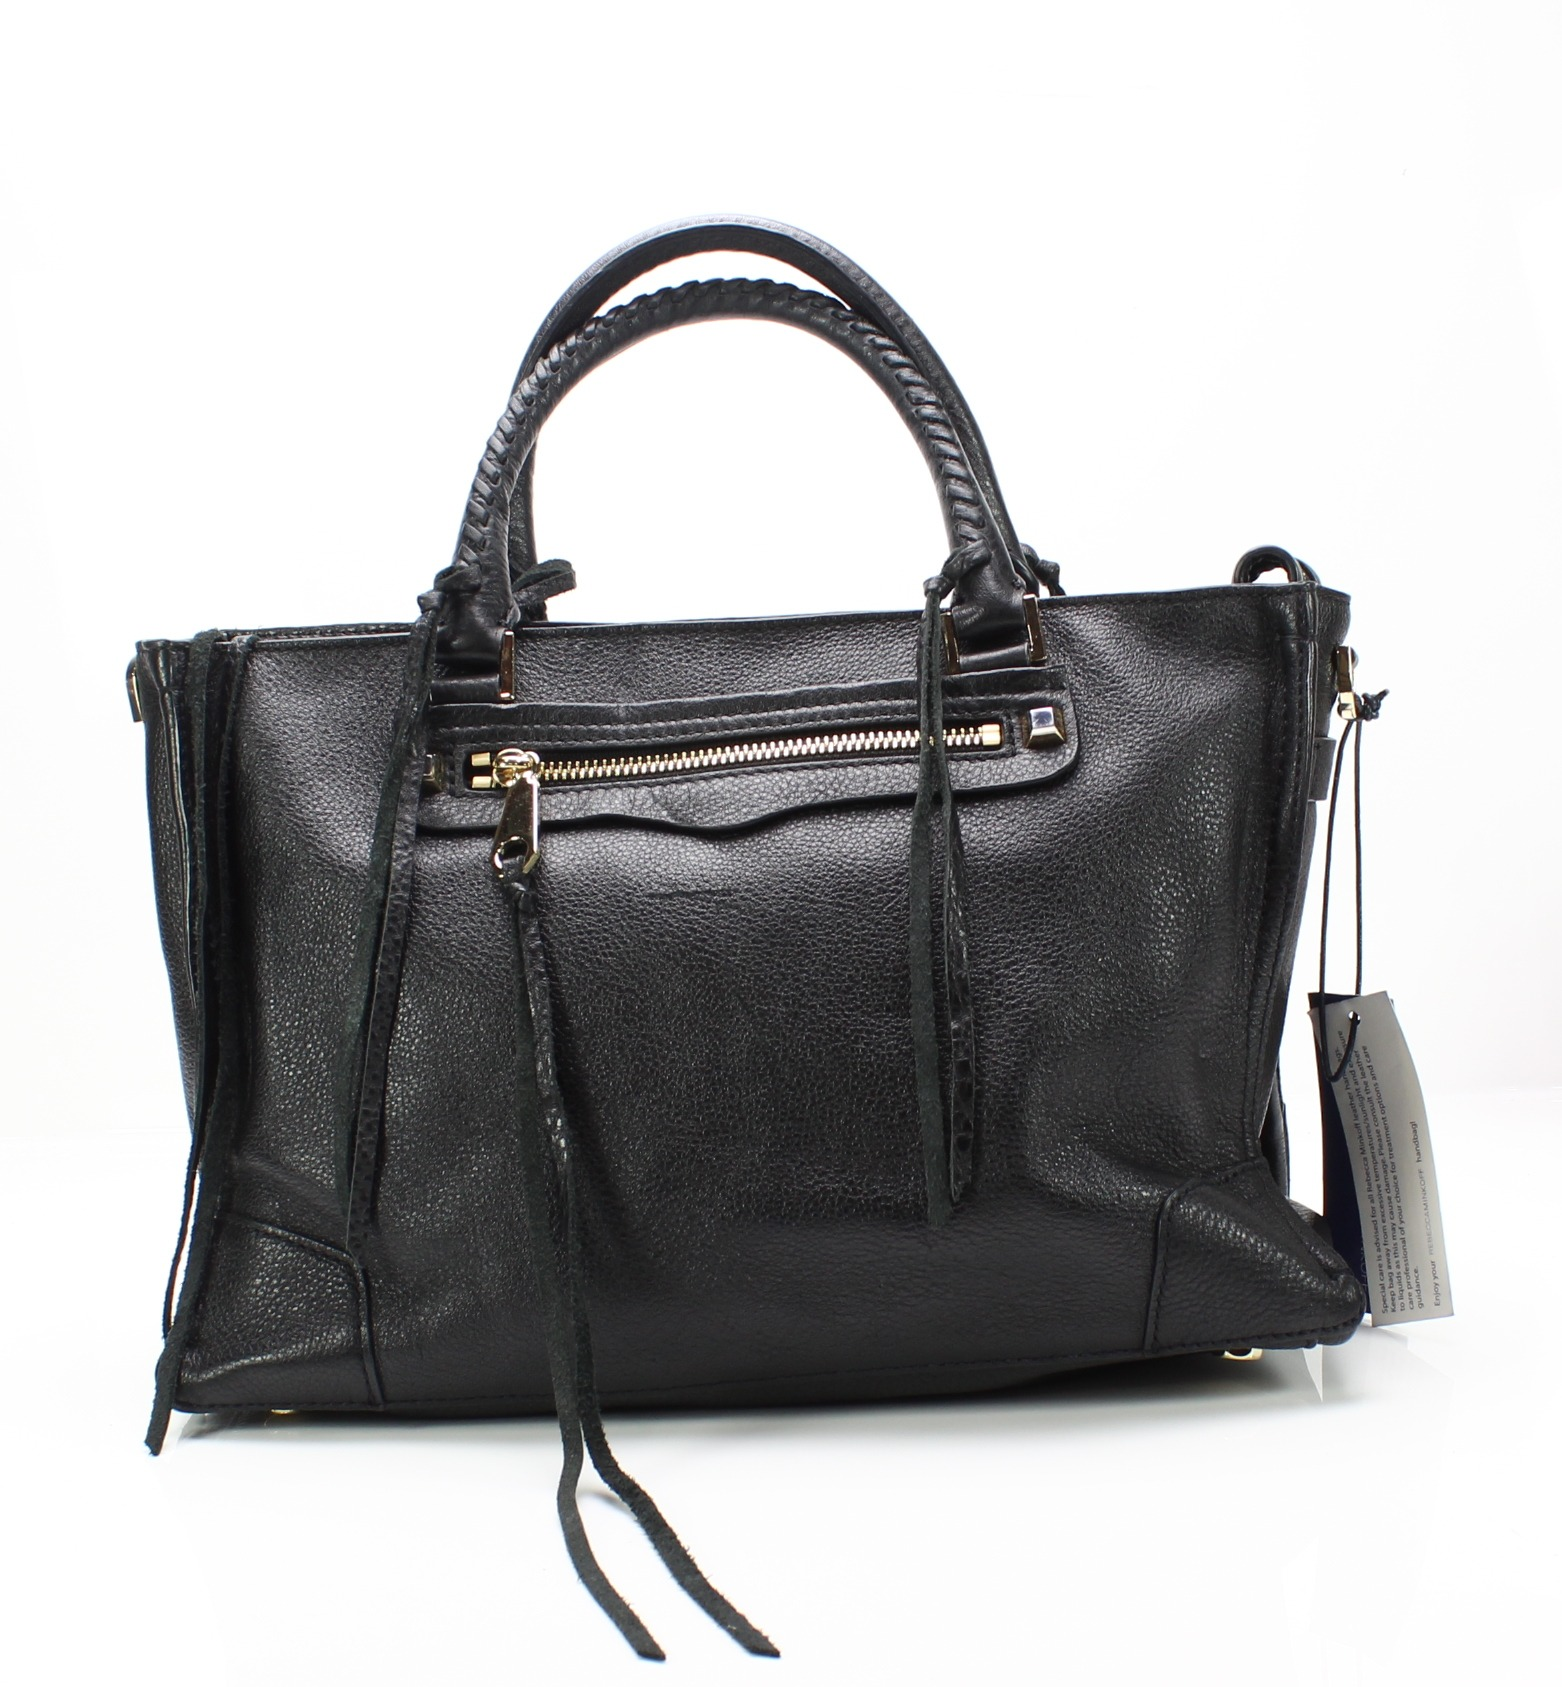 015c962d0ae5a Details about Rebecca Minkoff NEW Black Gold Pebble Leather Regan Satchel  Tote Bag  325-  064